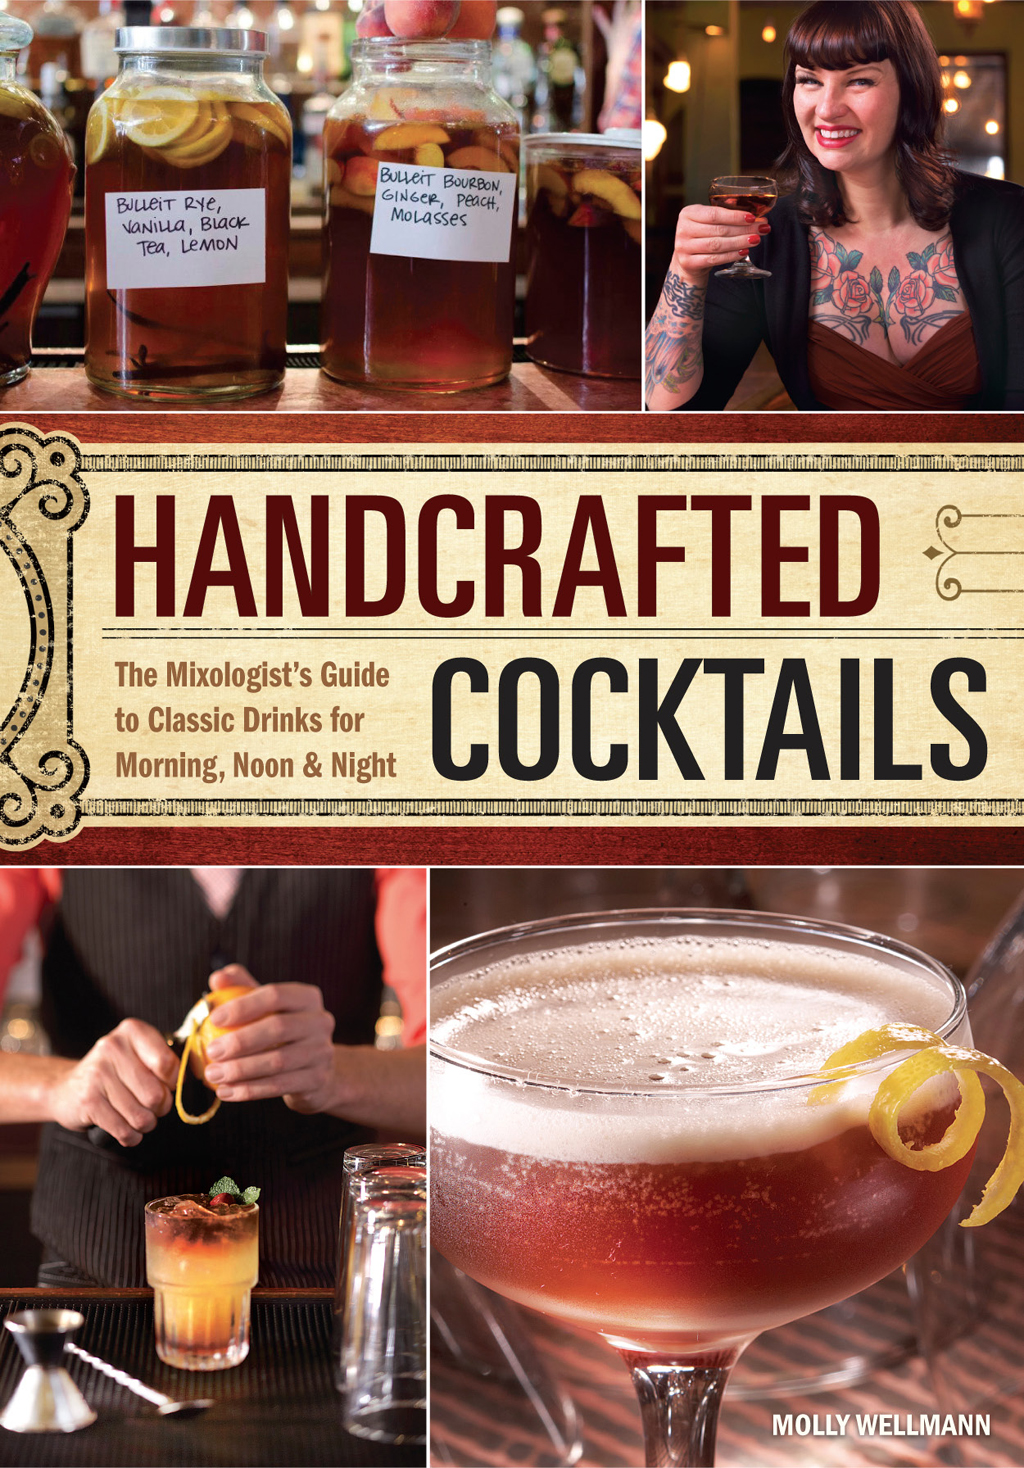 Handcrafted Cocktails The Mixologist's Guide to Classic Drinks for Morning,  Noon & Night